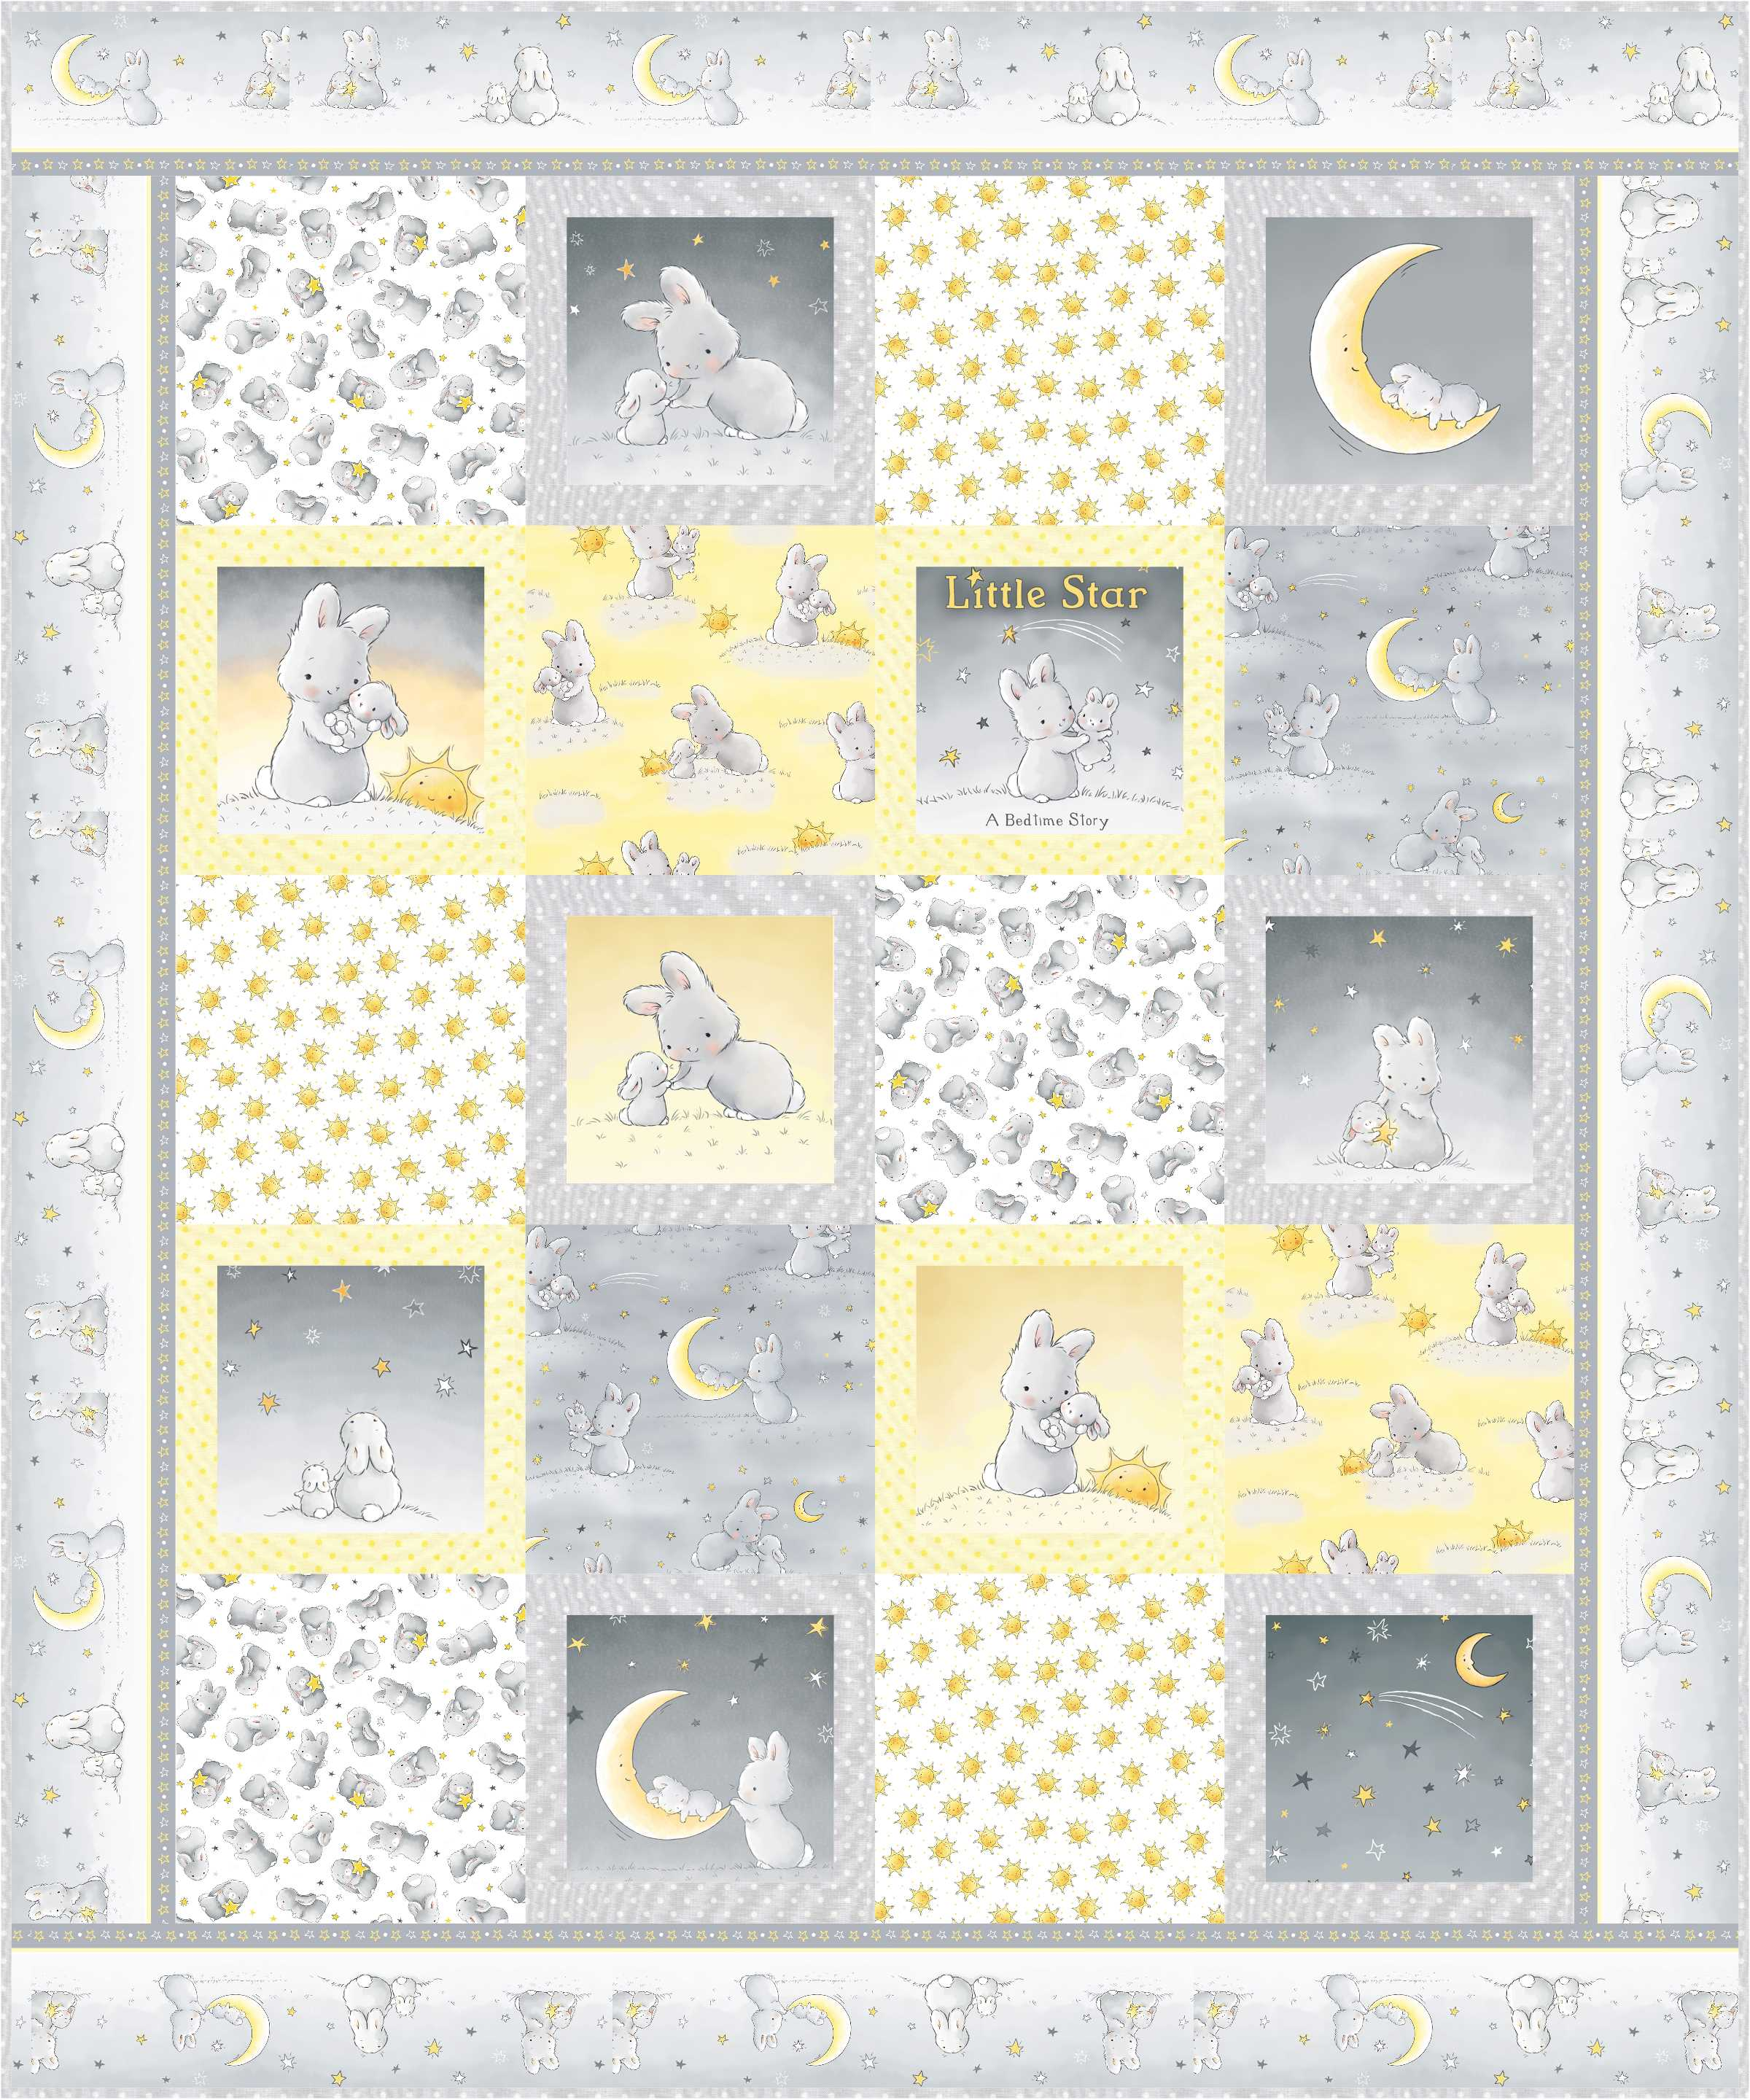 Cobbles, featuring the Little Star collection by Timeless Treasures